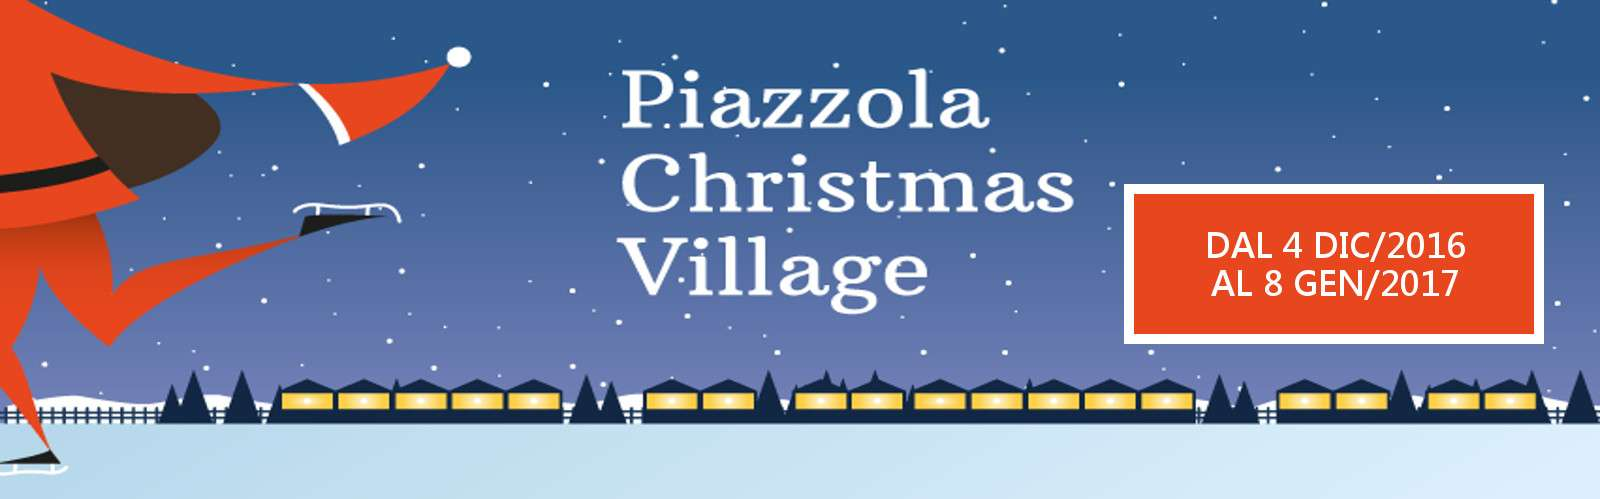 Piazzola Christmas Village